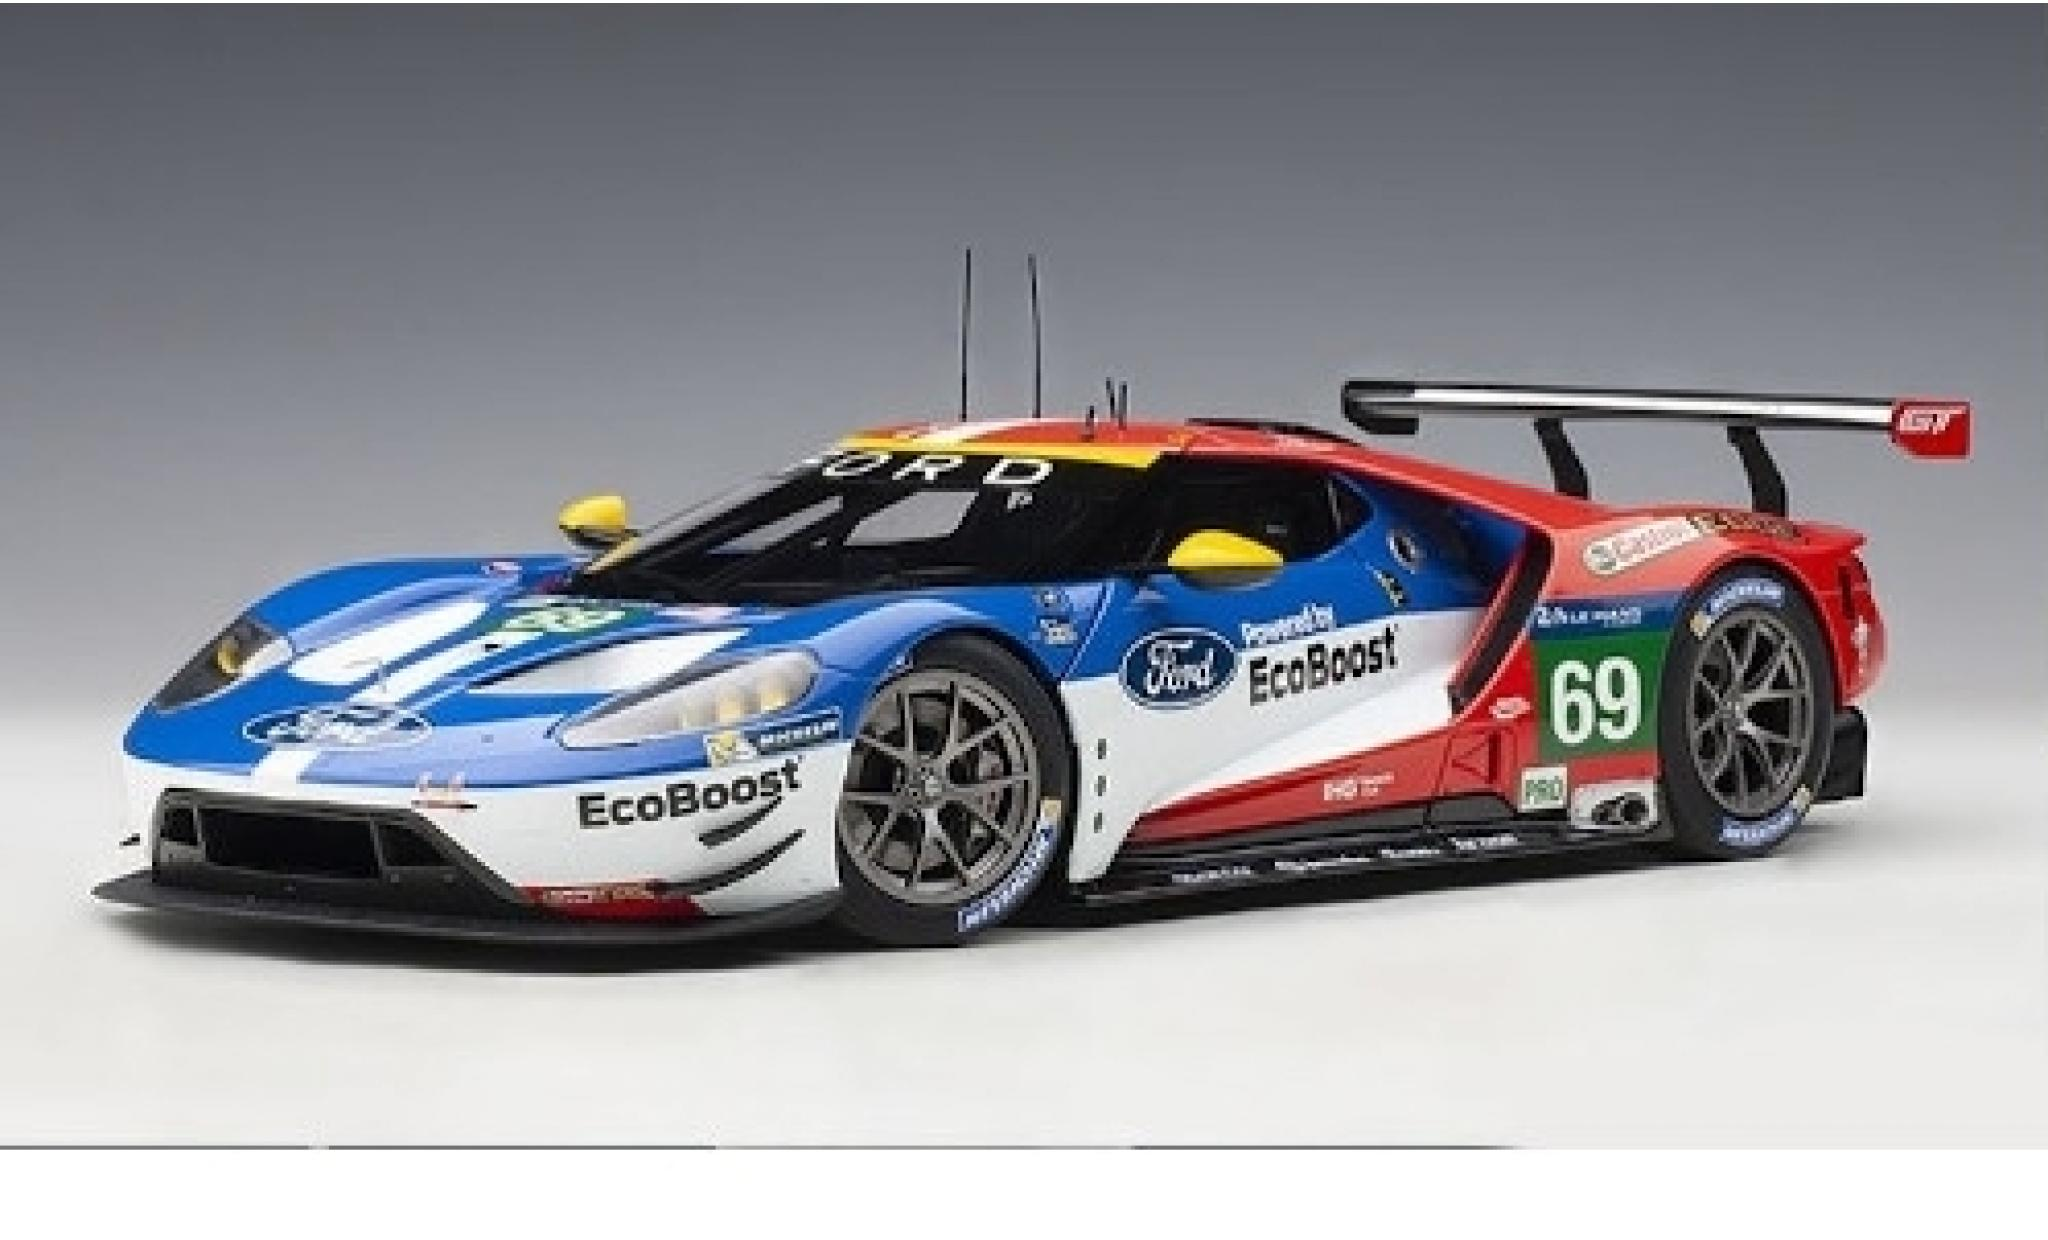 Ford GT 1/18 AUTOart No.69 Chip Ganassi Team USA EcoBoost 24h Le Mans 2016 R.Briscoe/S.Dixon/R.Westbrook